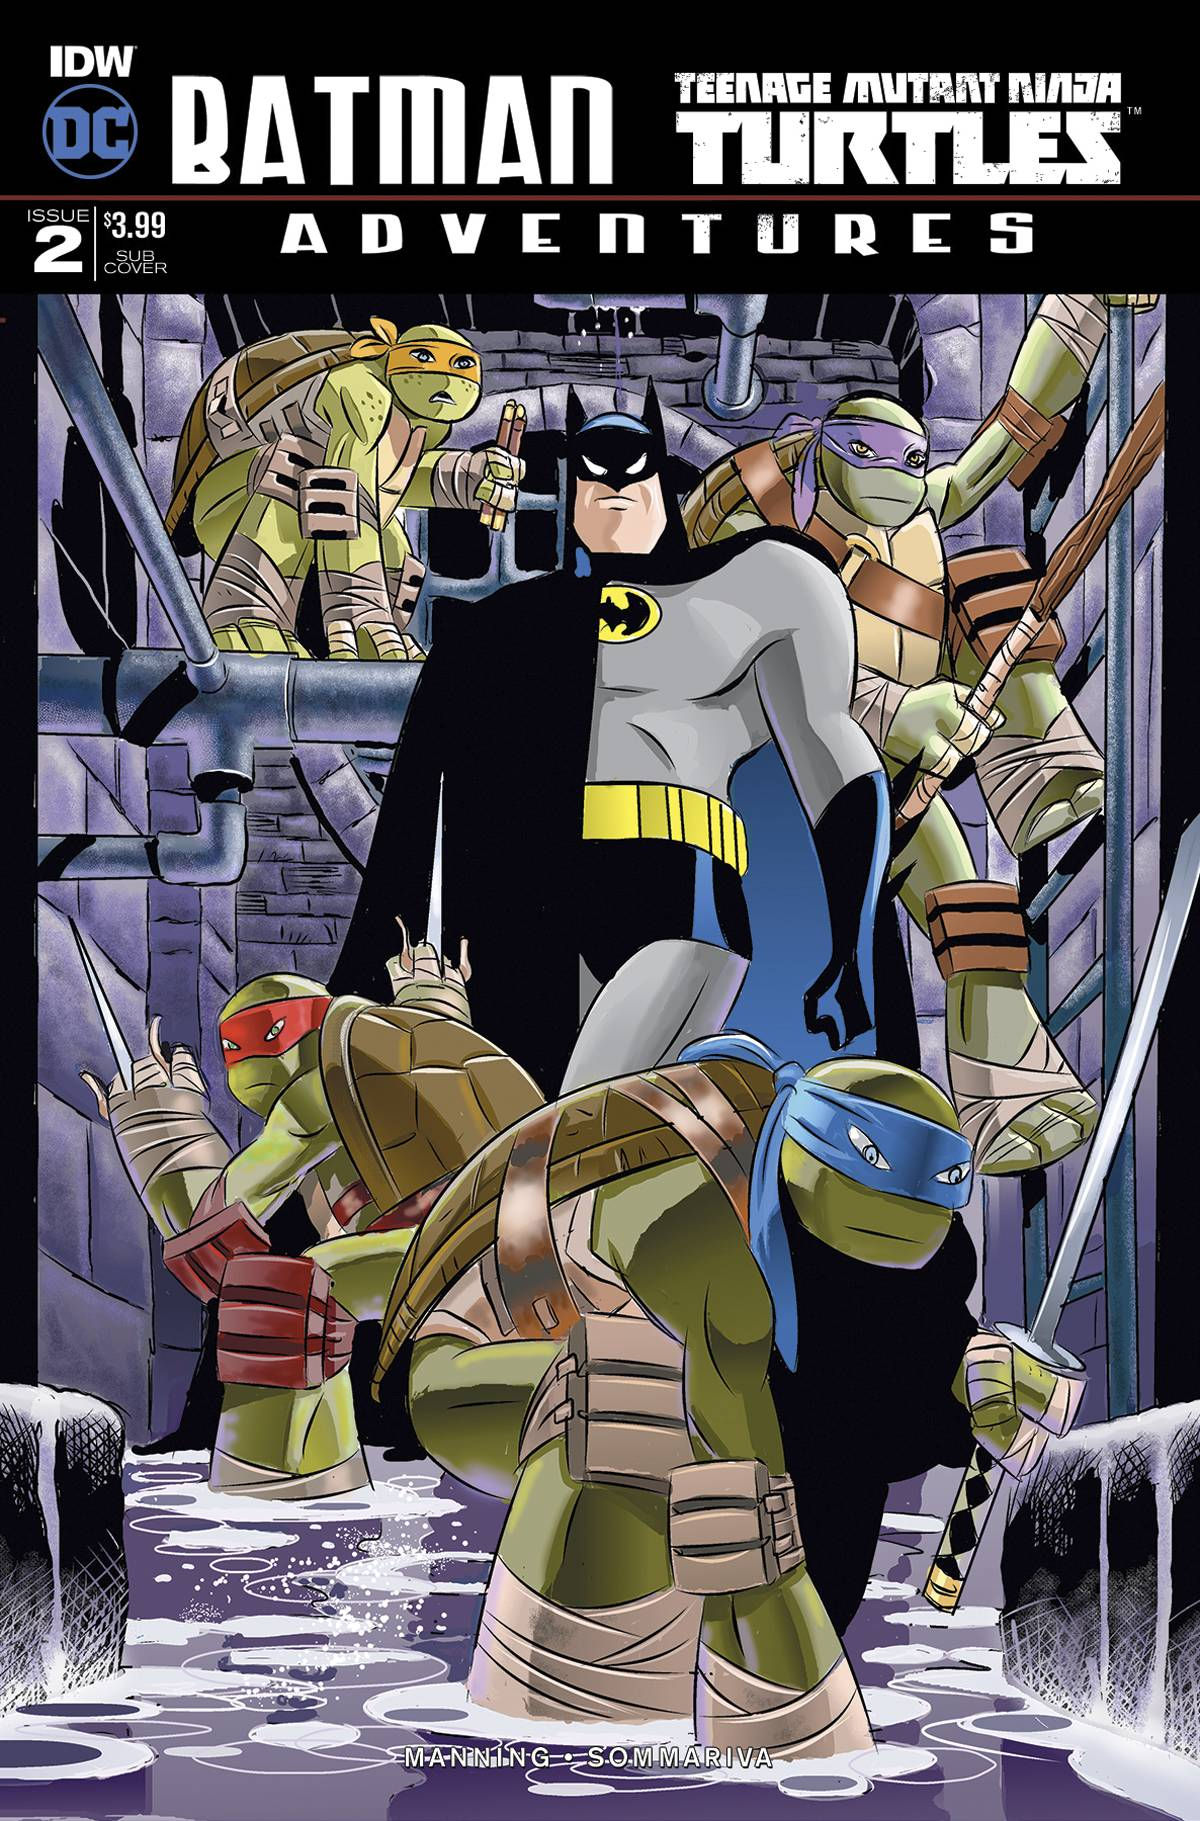 BATMAN TMNT ADVENTURES #2